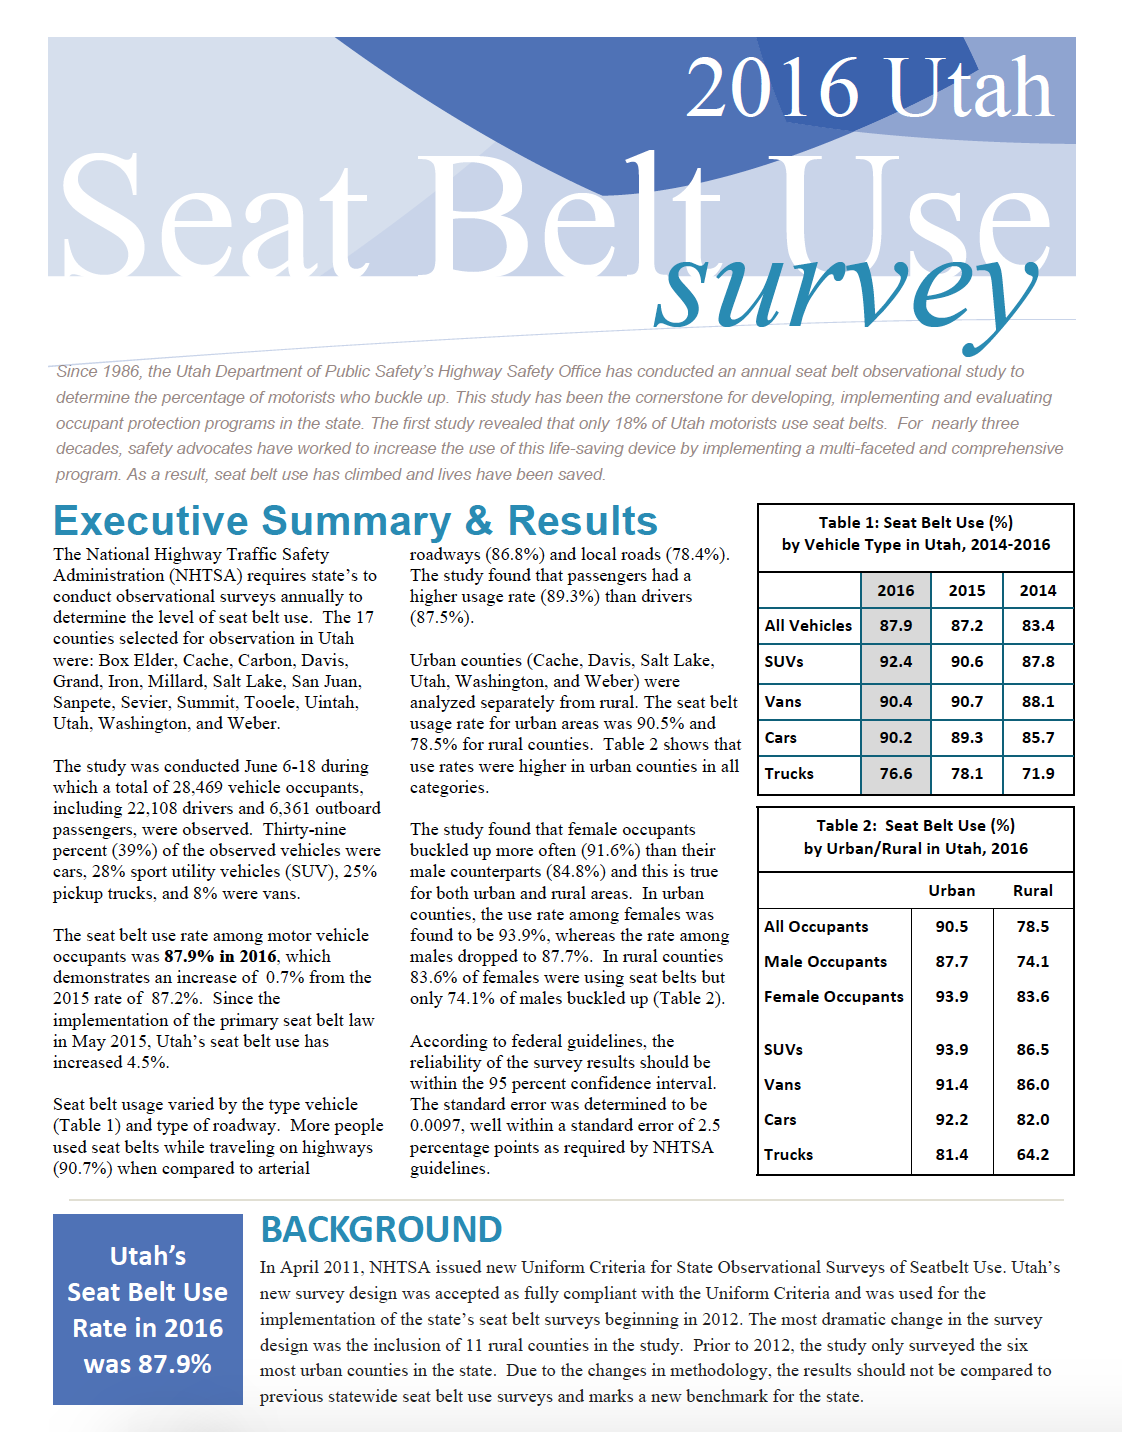 Screen cap of first page of 2016 Utah seat belt observational survey